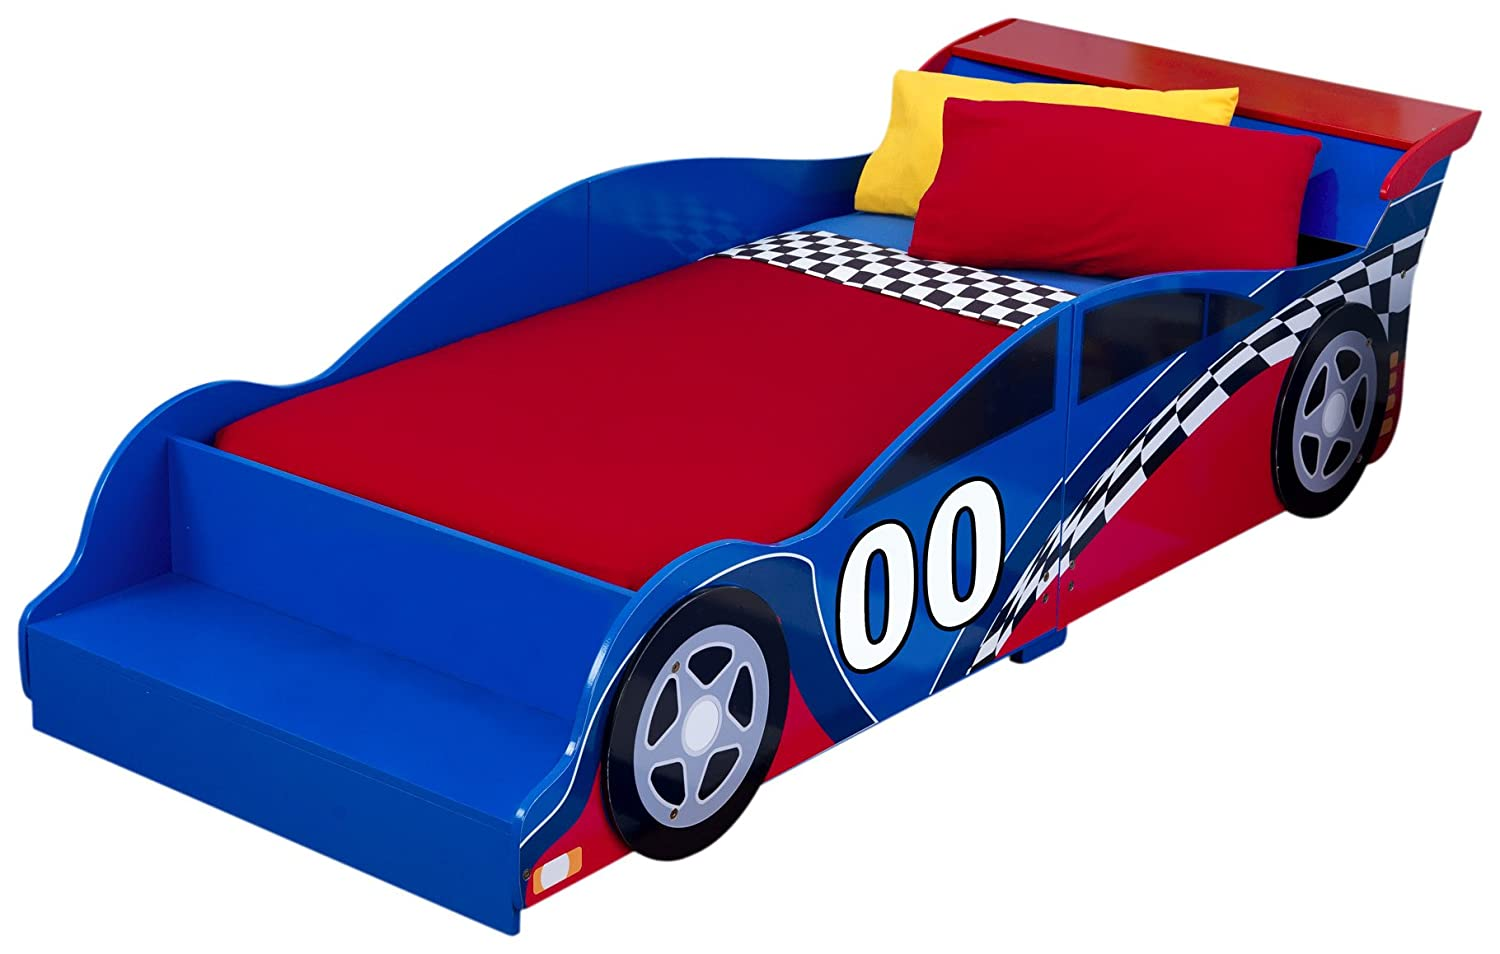 Toddler car bed - deals on 1001 Blocks